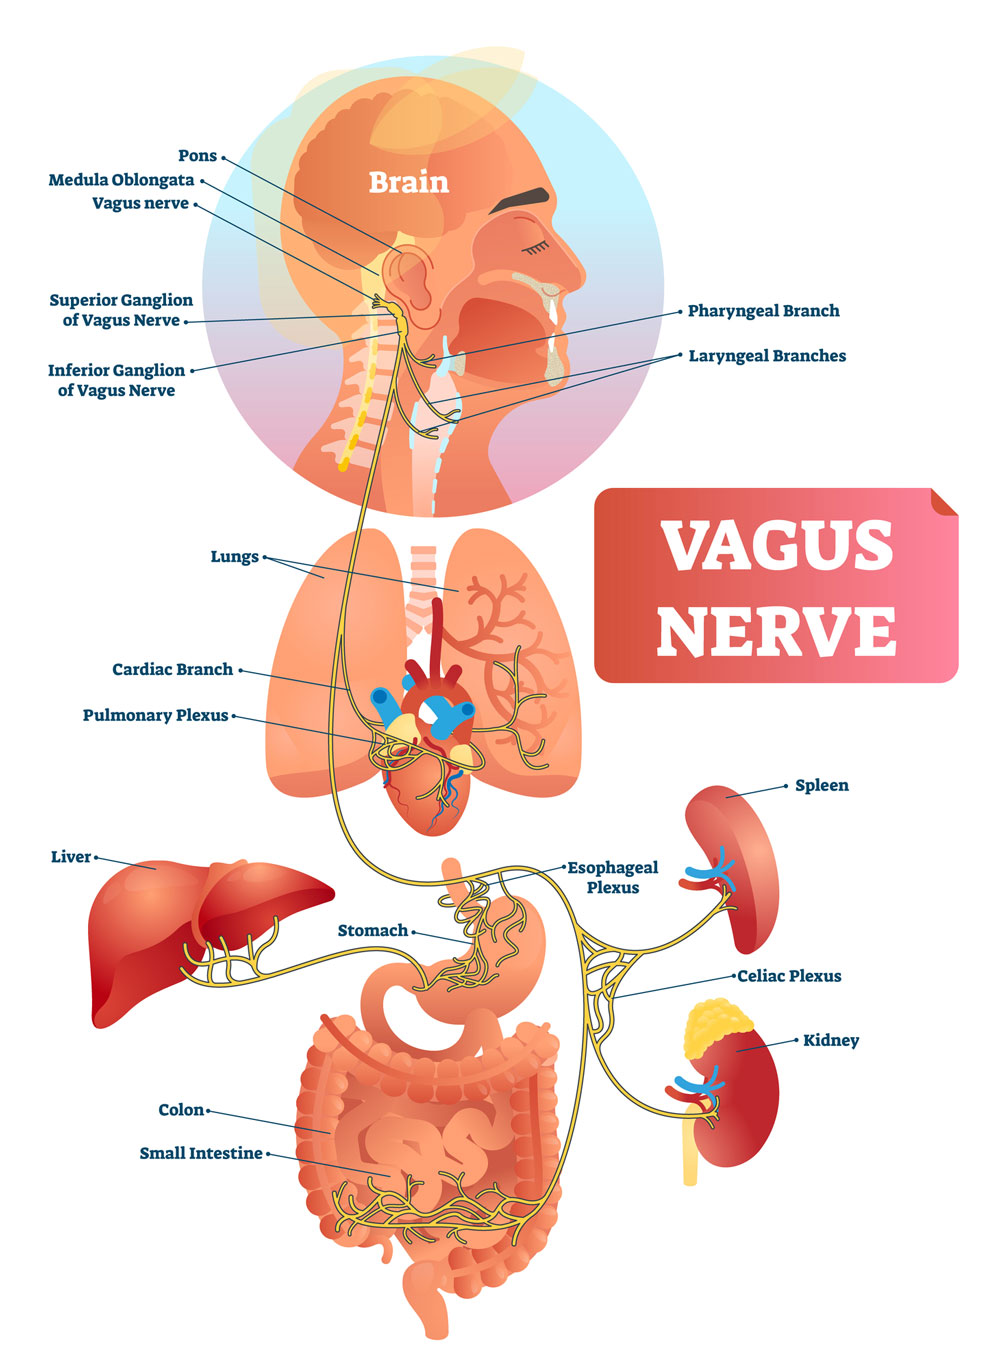 Yoga Works Via The Vagus Nerve